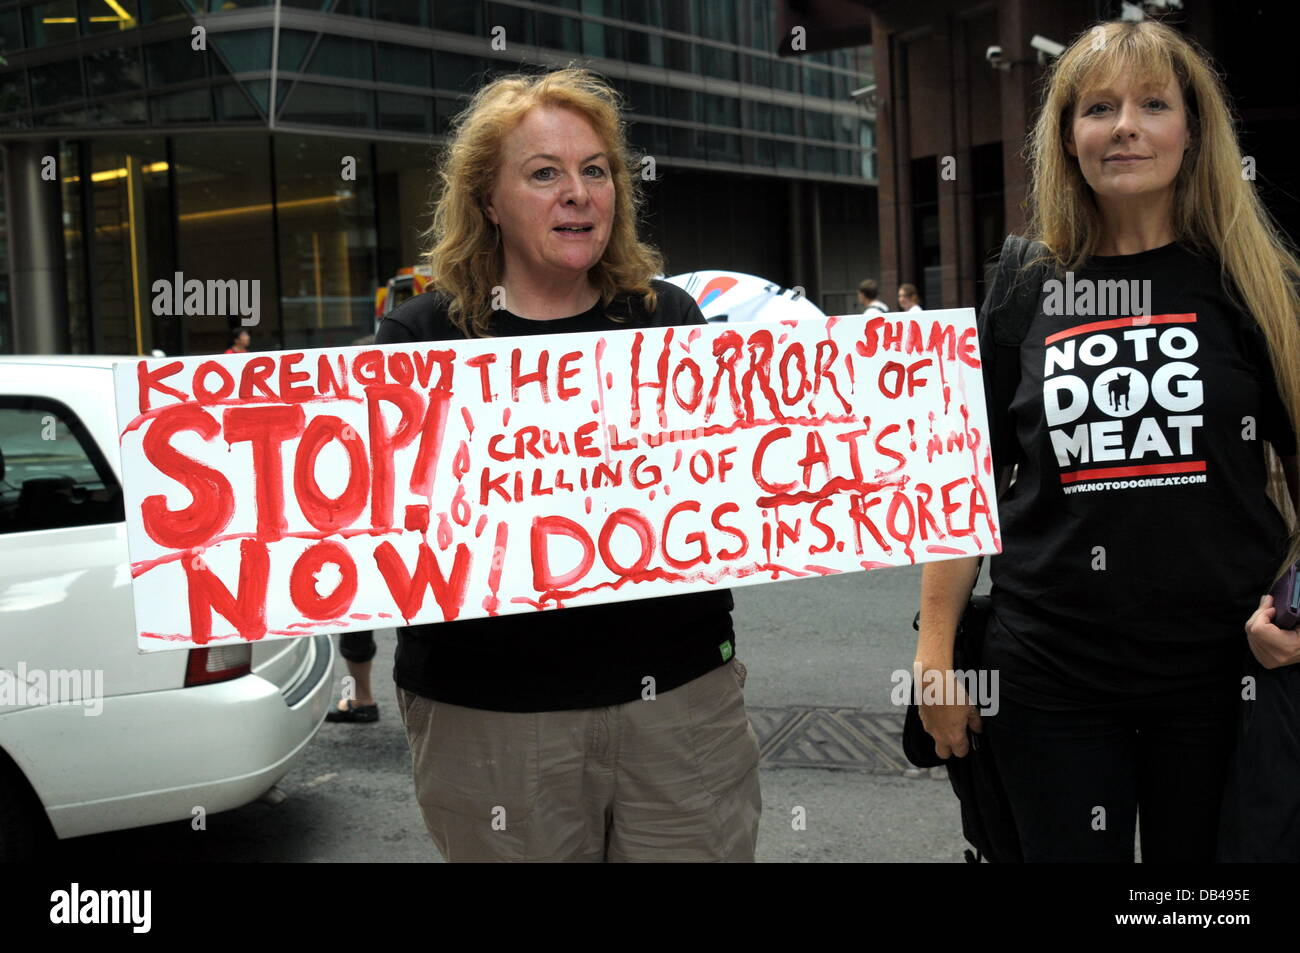 Actives holding placards protest against the South Korea over the next sixty days for the dog eating festival Bokdays - Stock Image